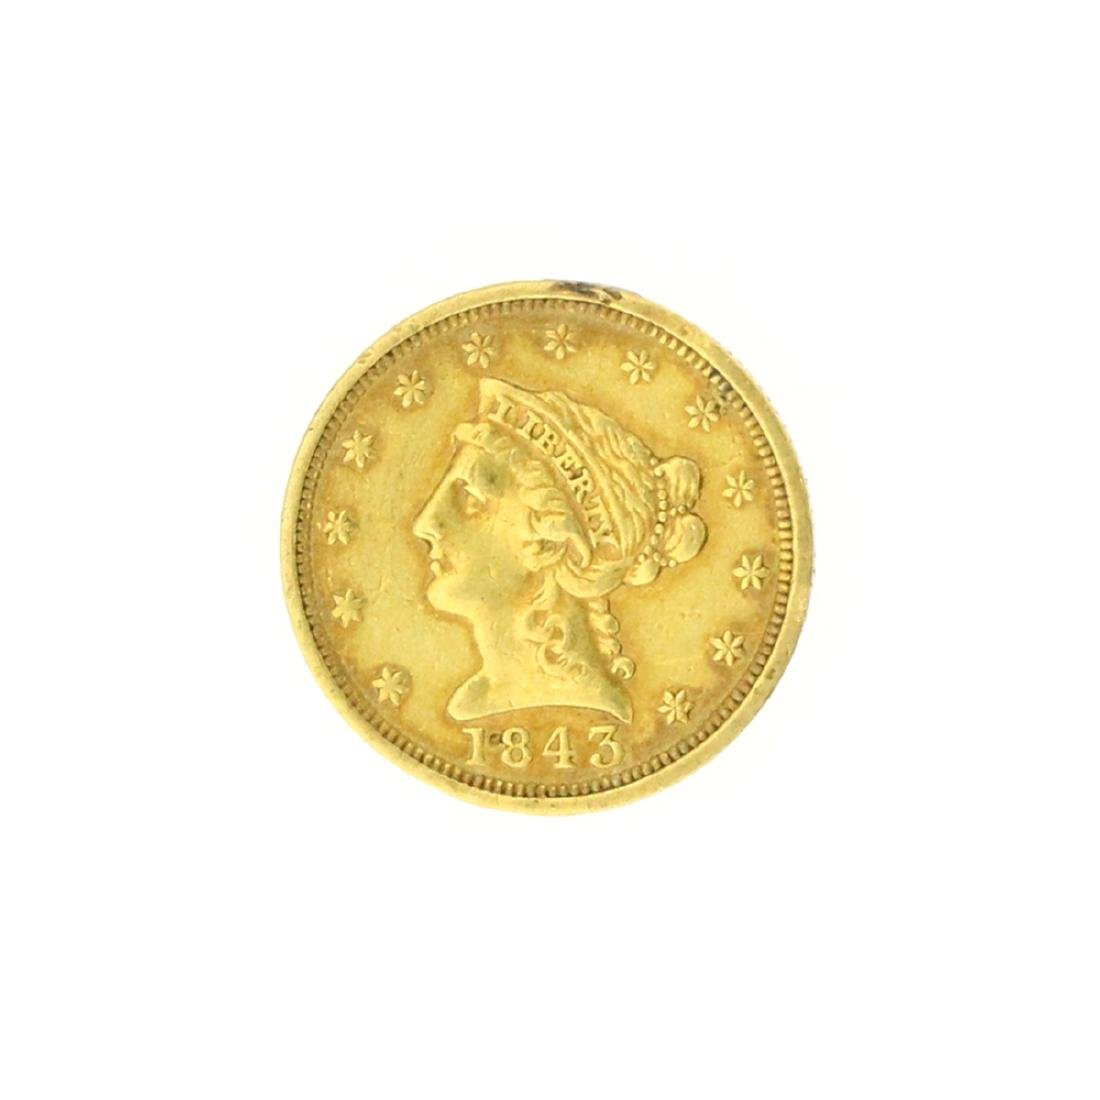 Extremely Rare 1843 $2.50 U.S. Liberty Head Gold Coin